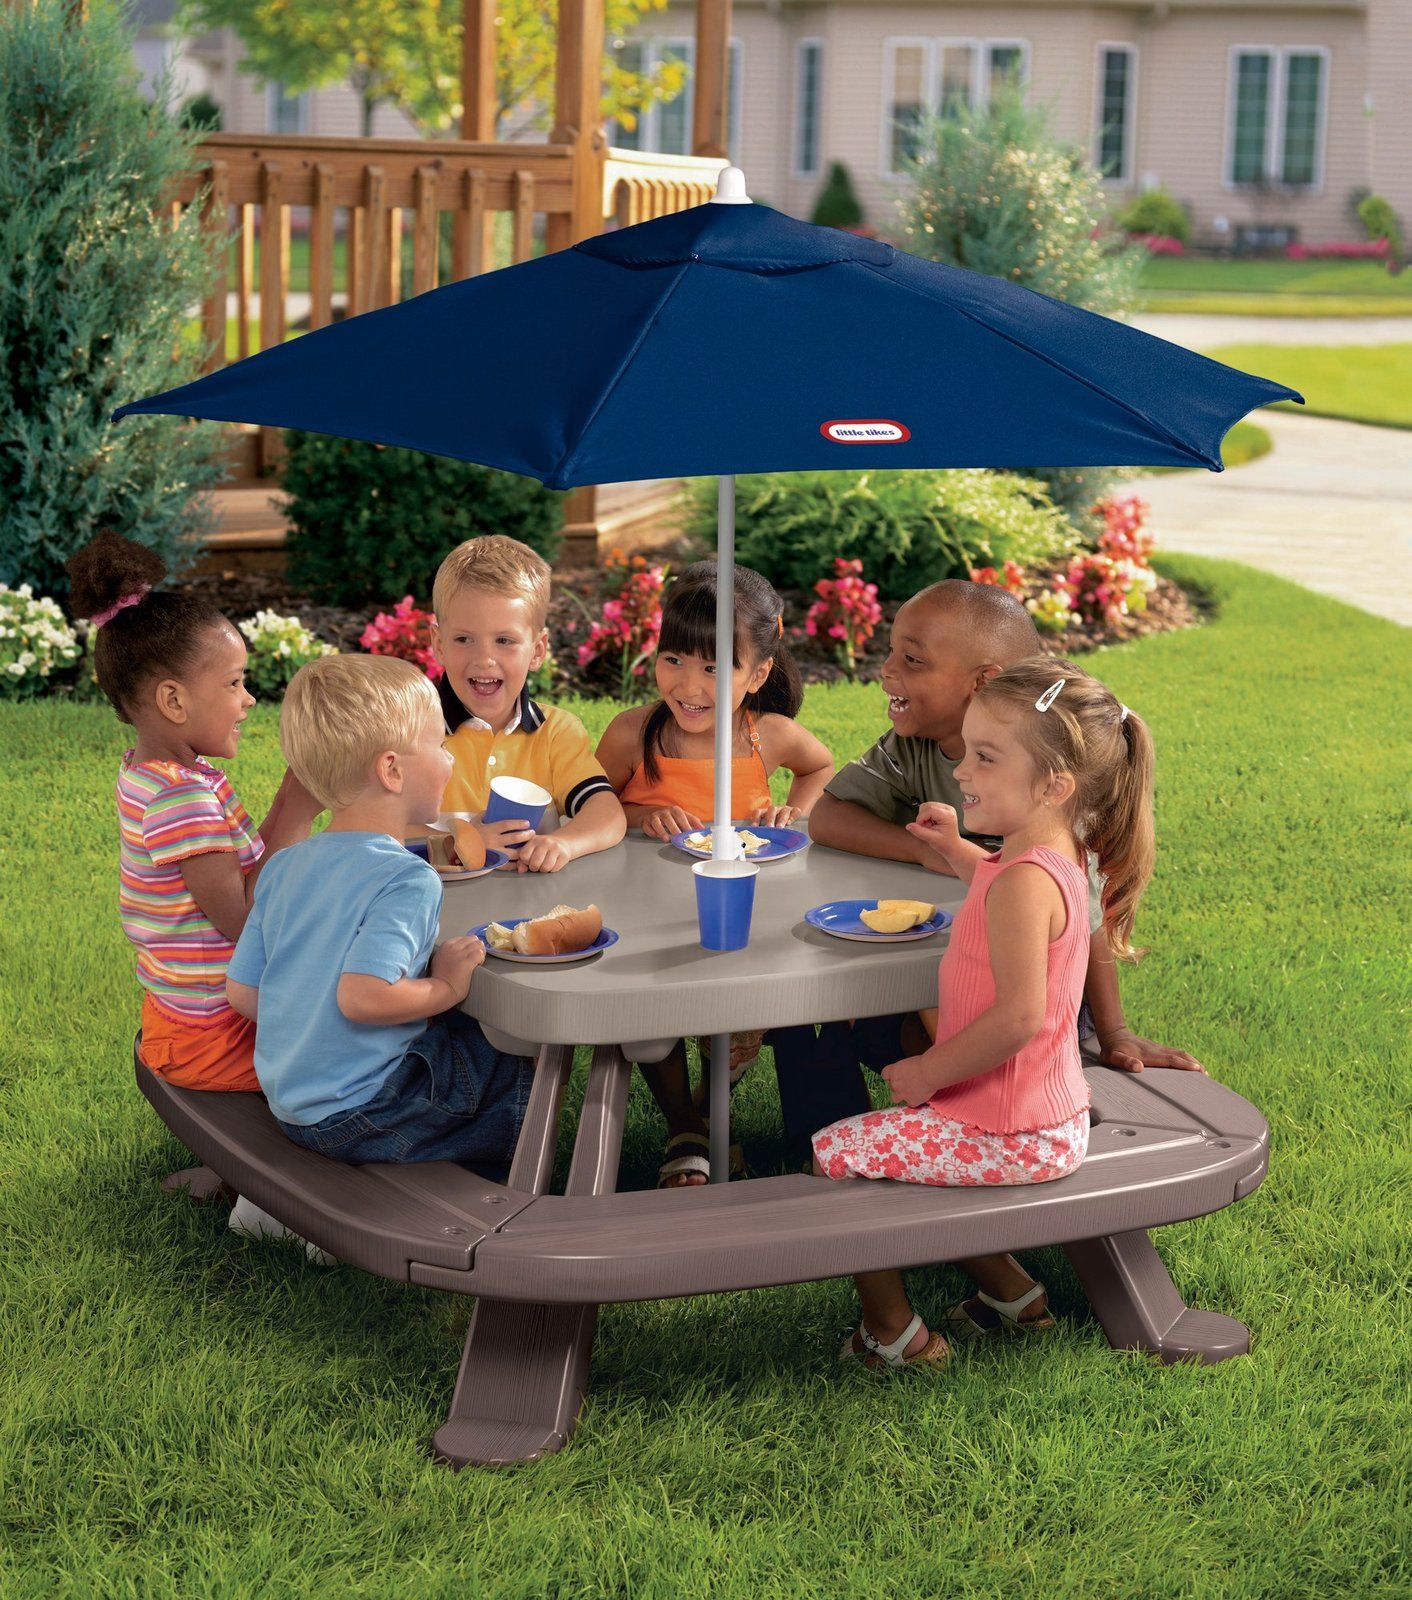 Little Tikes Fold U0027n Store Picnic Table With Market Umbrella   The Band Has  To